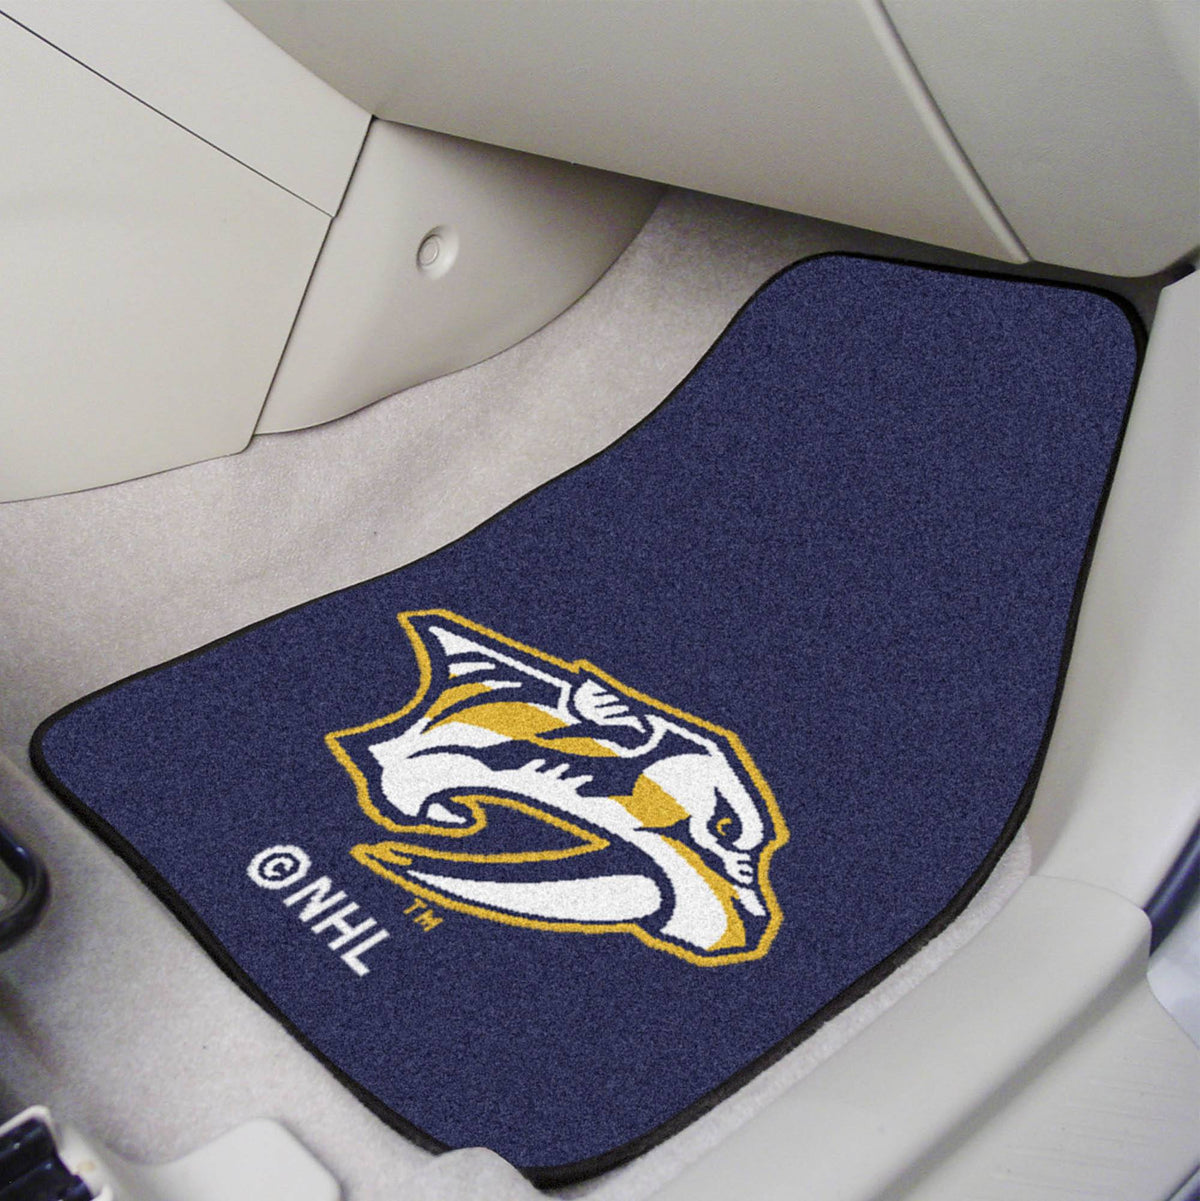 NHL - Carpet Car Mat, 2-Piece Set NHL Mats, Front Car Mats, 2-pc Carpet Car Mat Set, NHL, Auto Fan Mats Nashville Predators